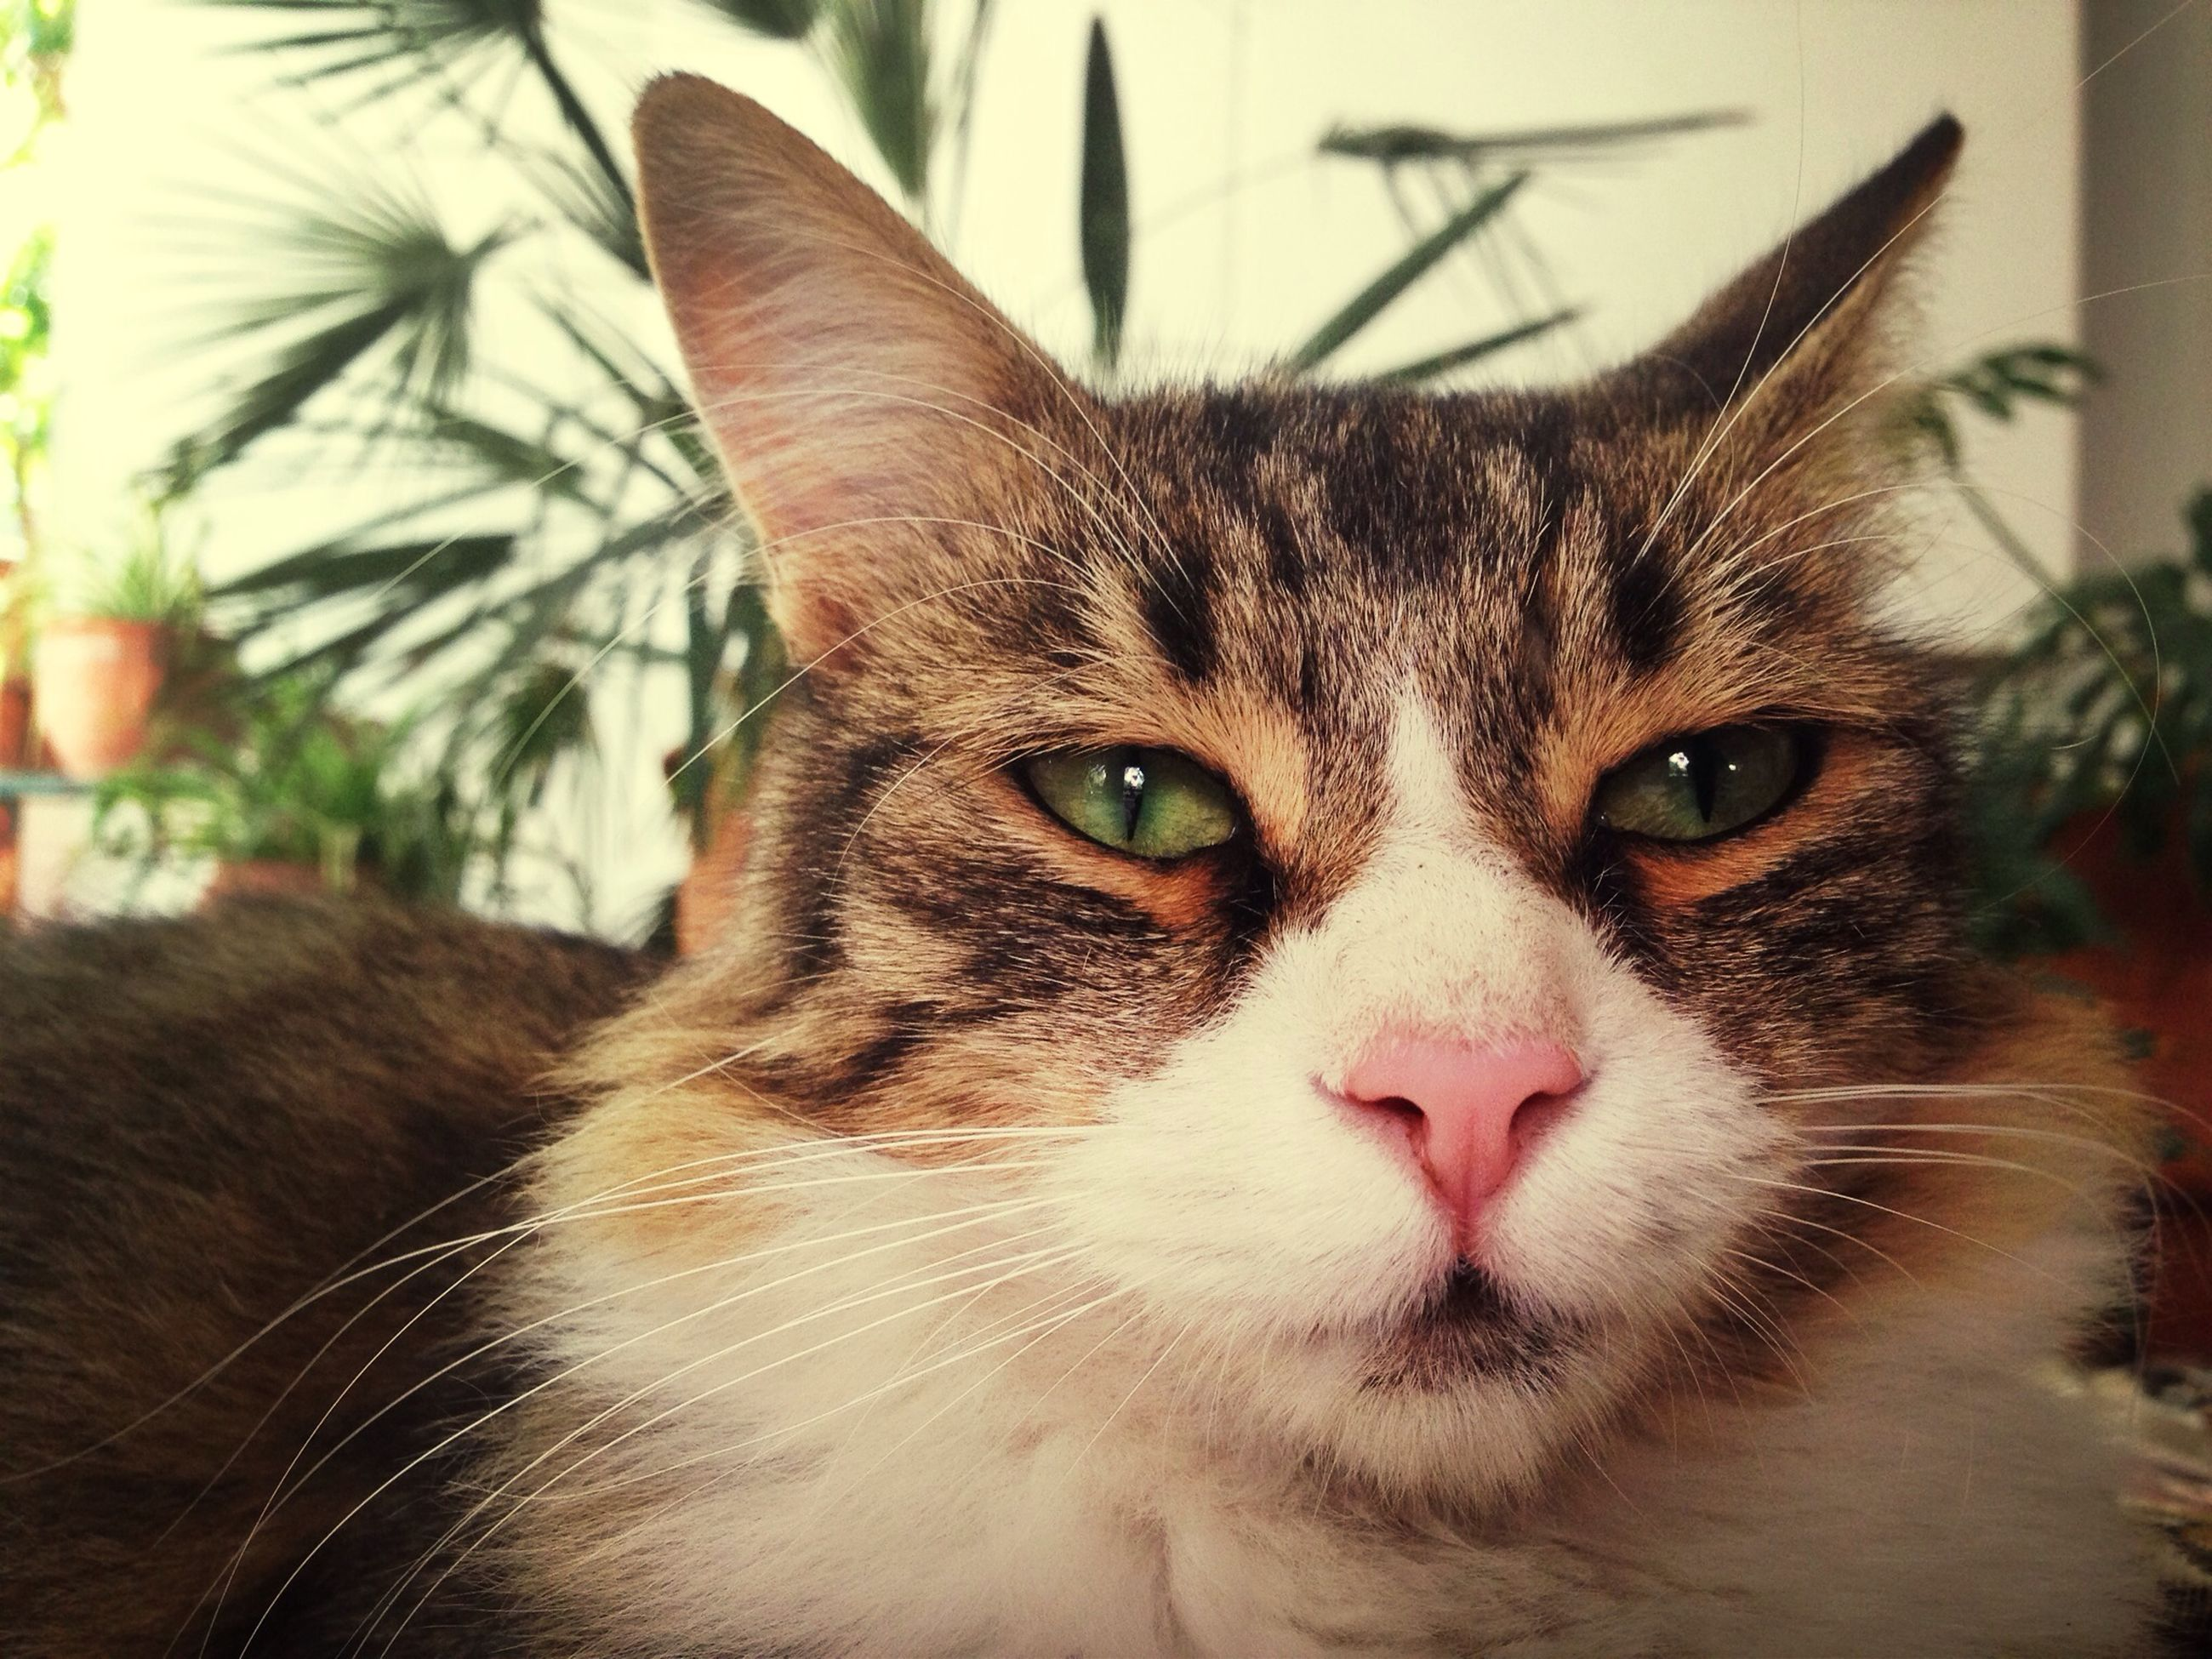 pets, domestic animals, domestic cat, animal themes, one animal, mammal, cat, feline, portrait, looking at camera, whisker, close-up, focus on foreground, indoors, animal head, alertness, animal eye, relaxation, staring